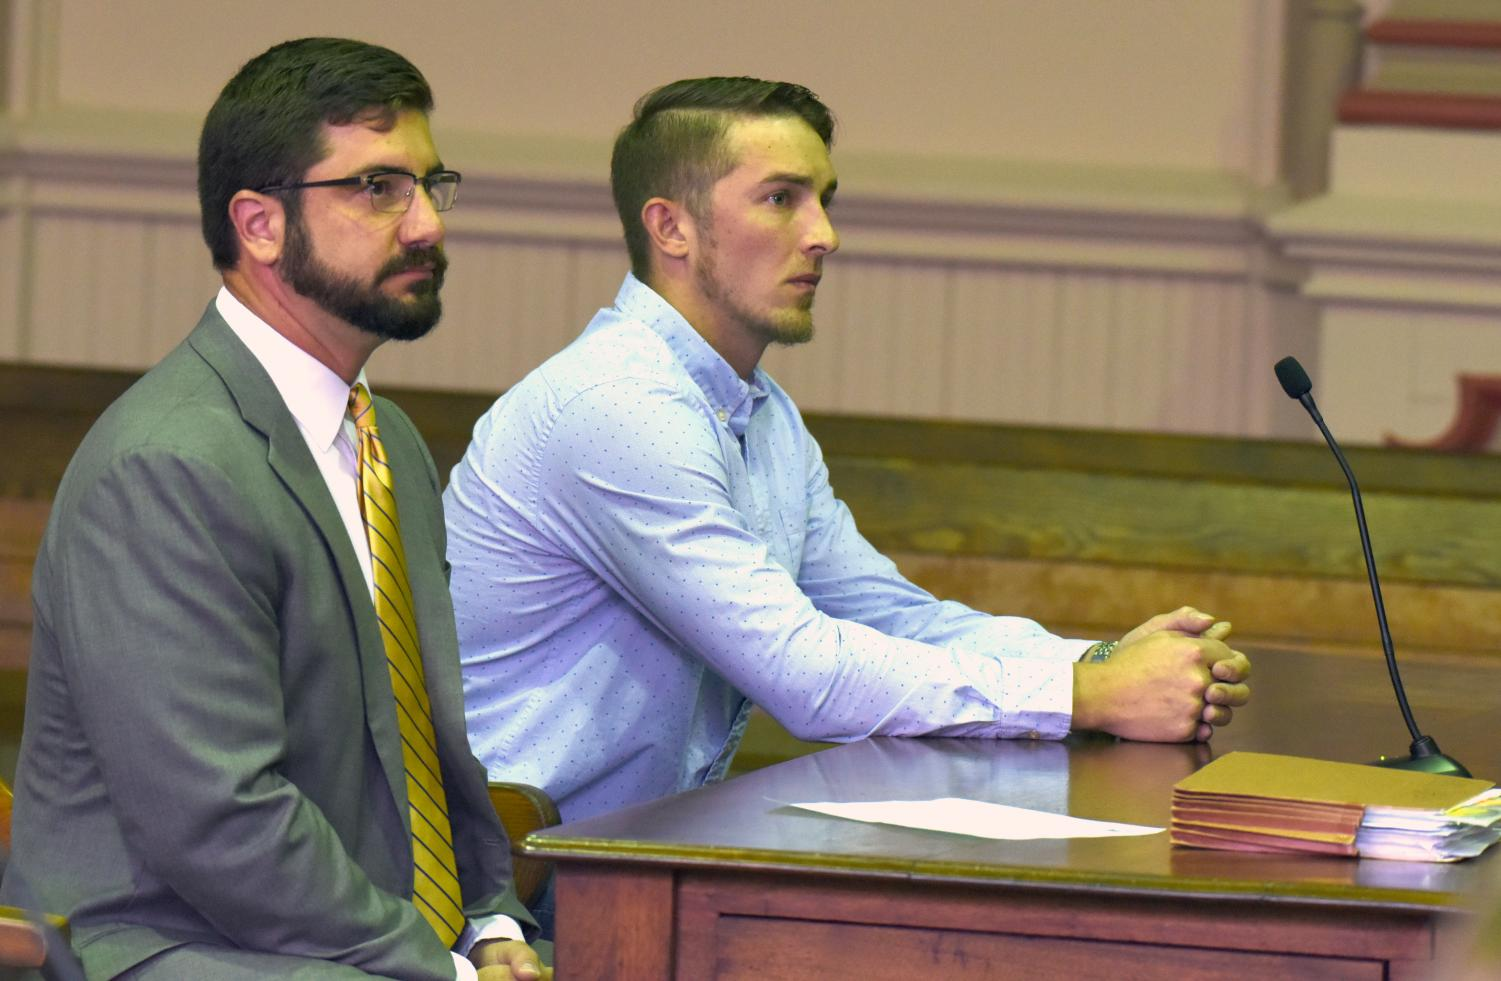 Dutch Bess, right, pleads guilty to one count of tampering with evidence following the overdose death of Clay Gorby two years ago.